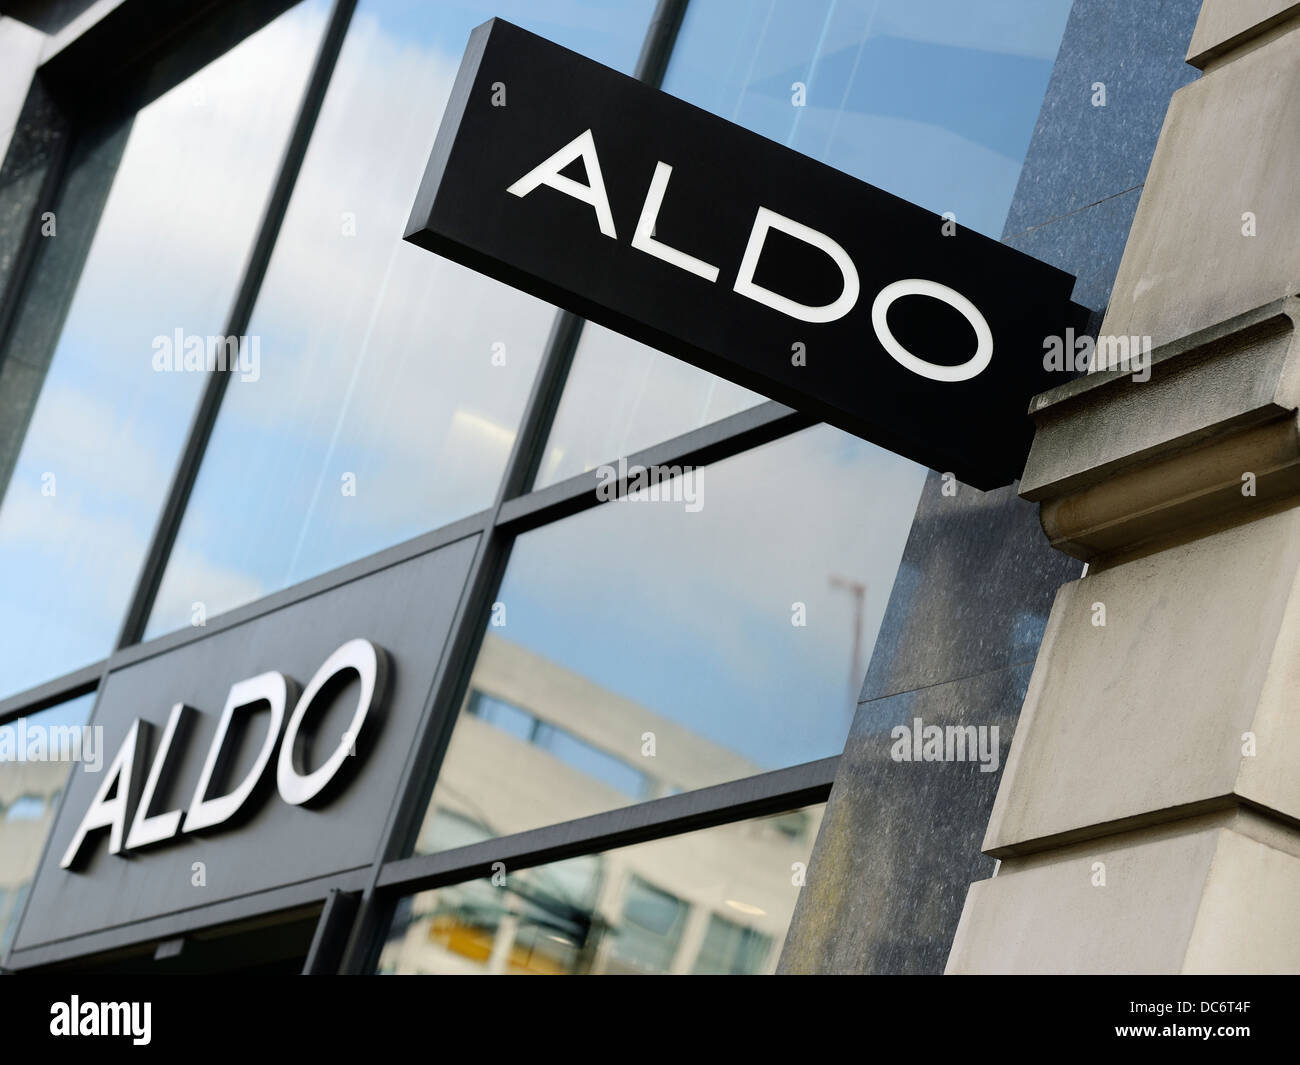 Aldo Shop Sign, Oxford Street, London, UK. London Branch of the Canadian owned global shoe retailer. - Stock Image